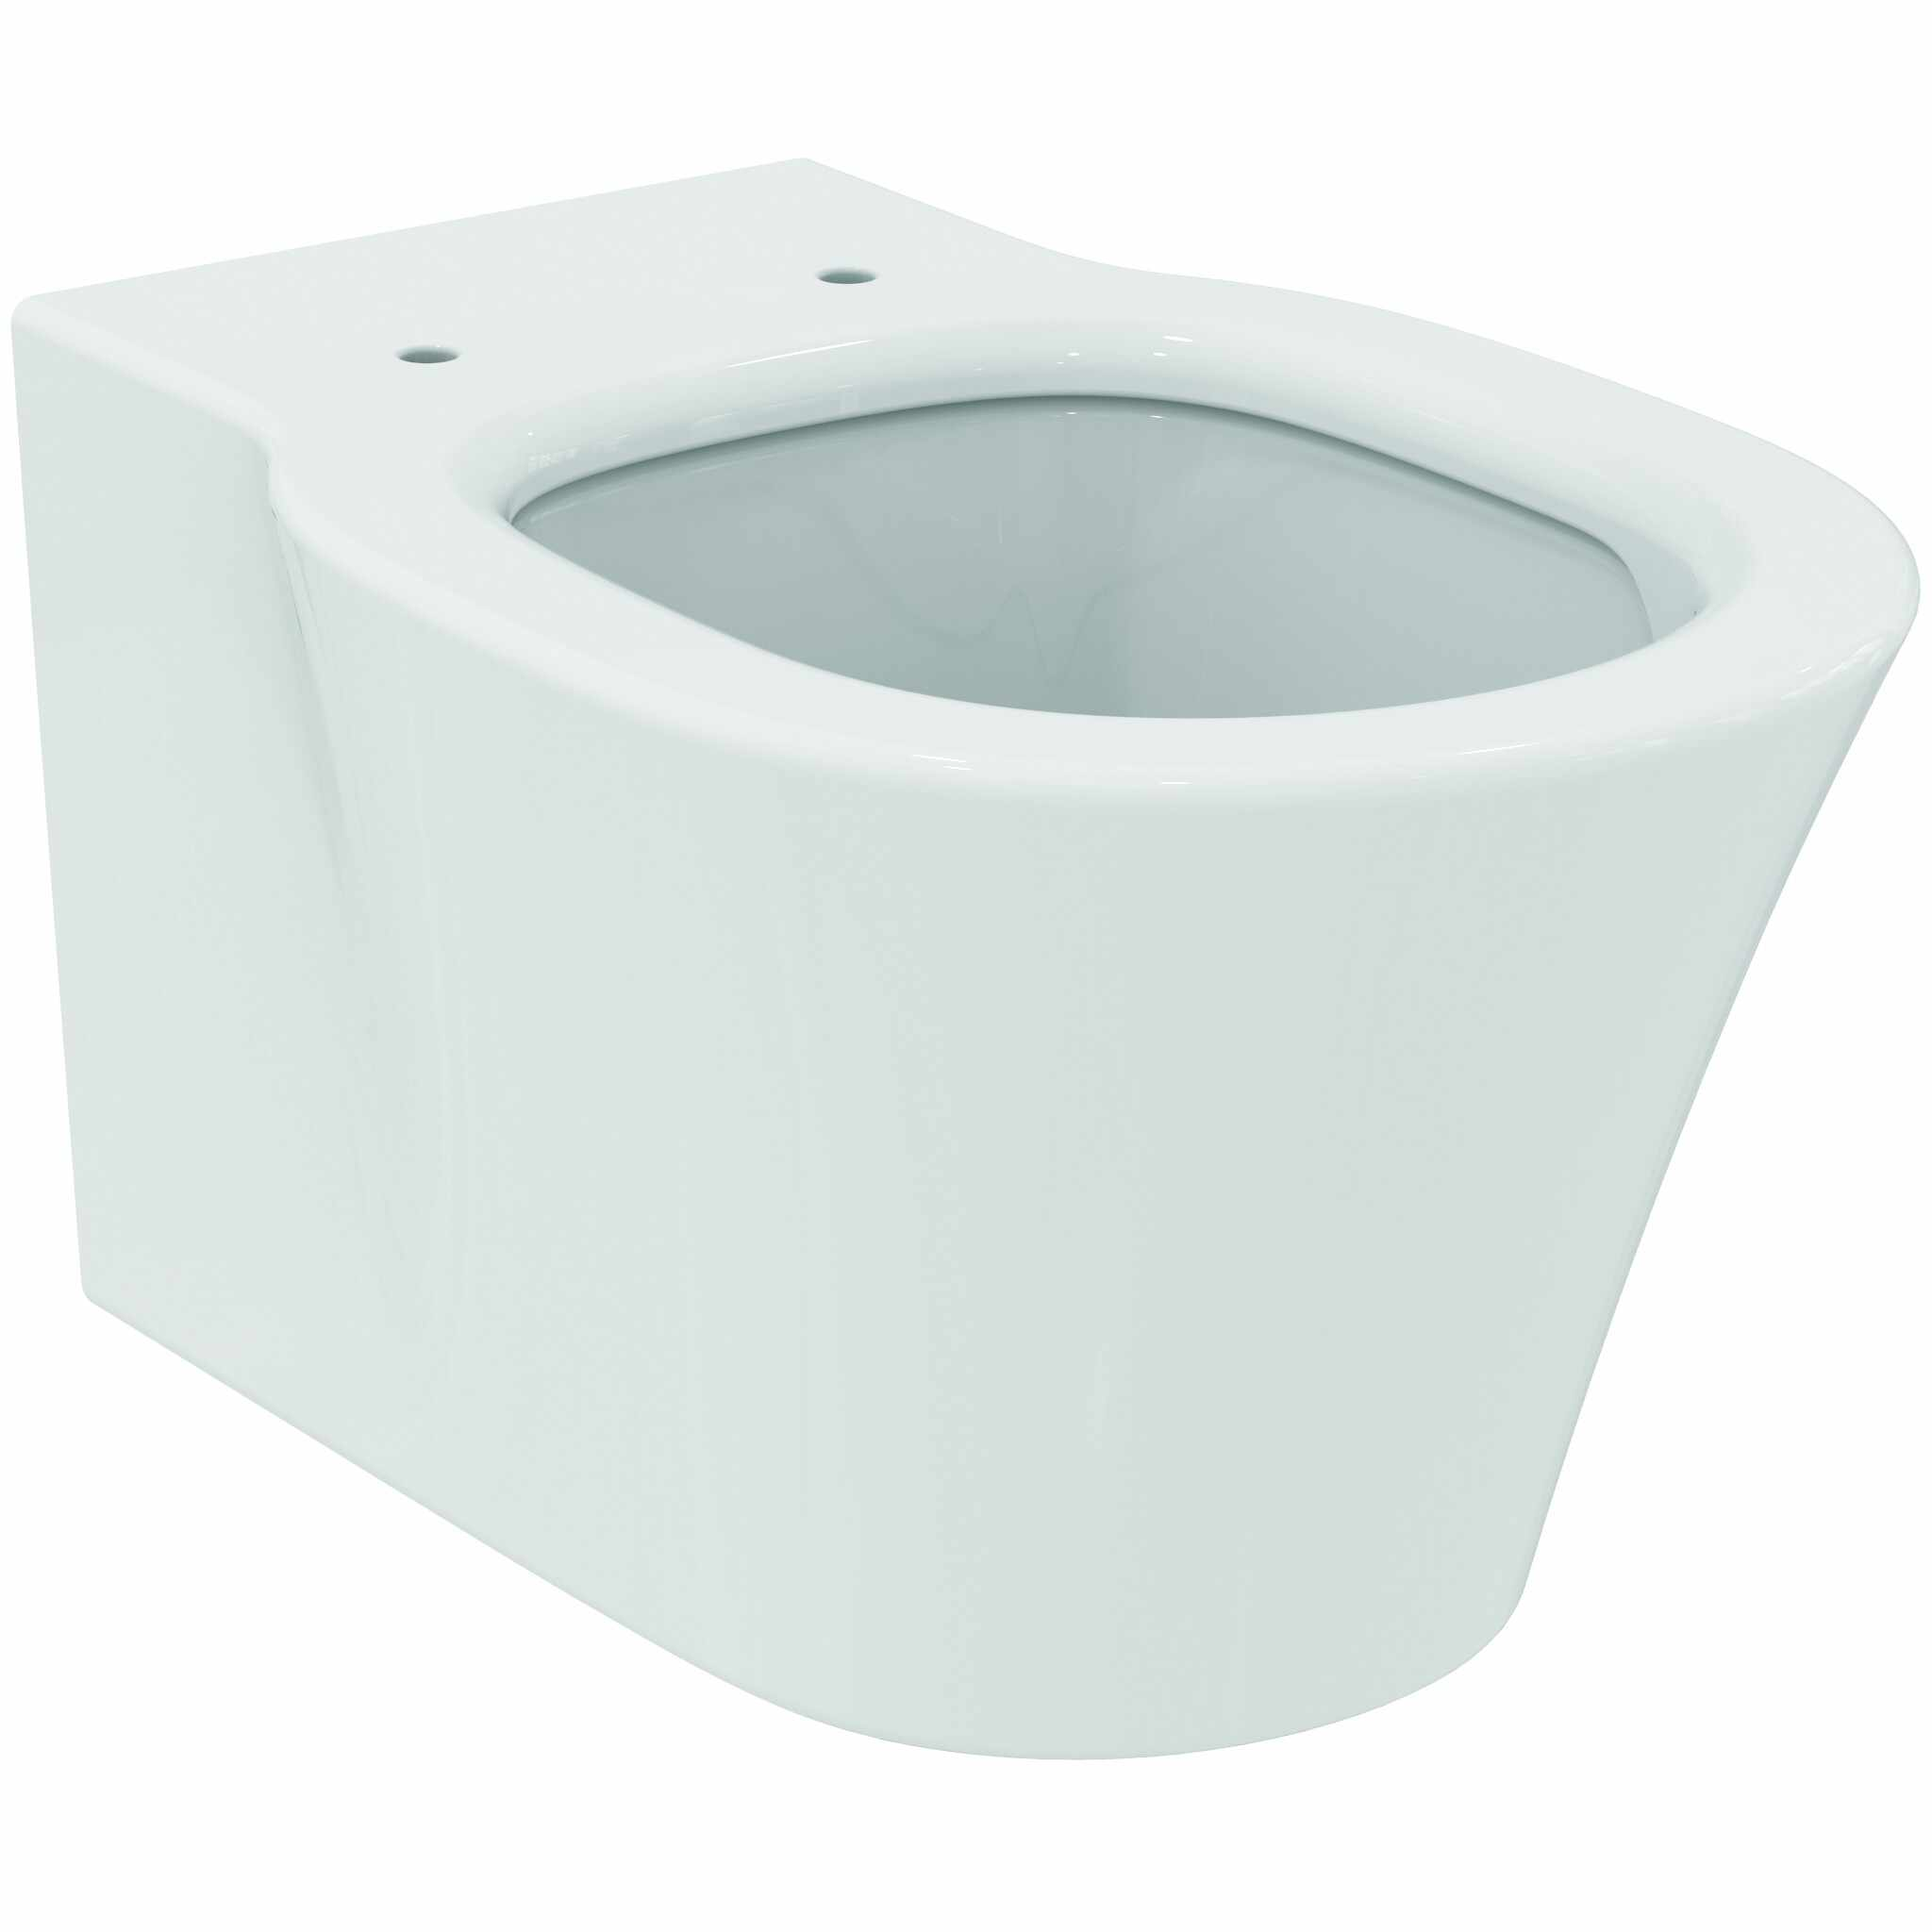 Vas WC suspendat Ideal Standard Connect Air AquaBlade la pret 799 lei